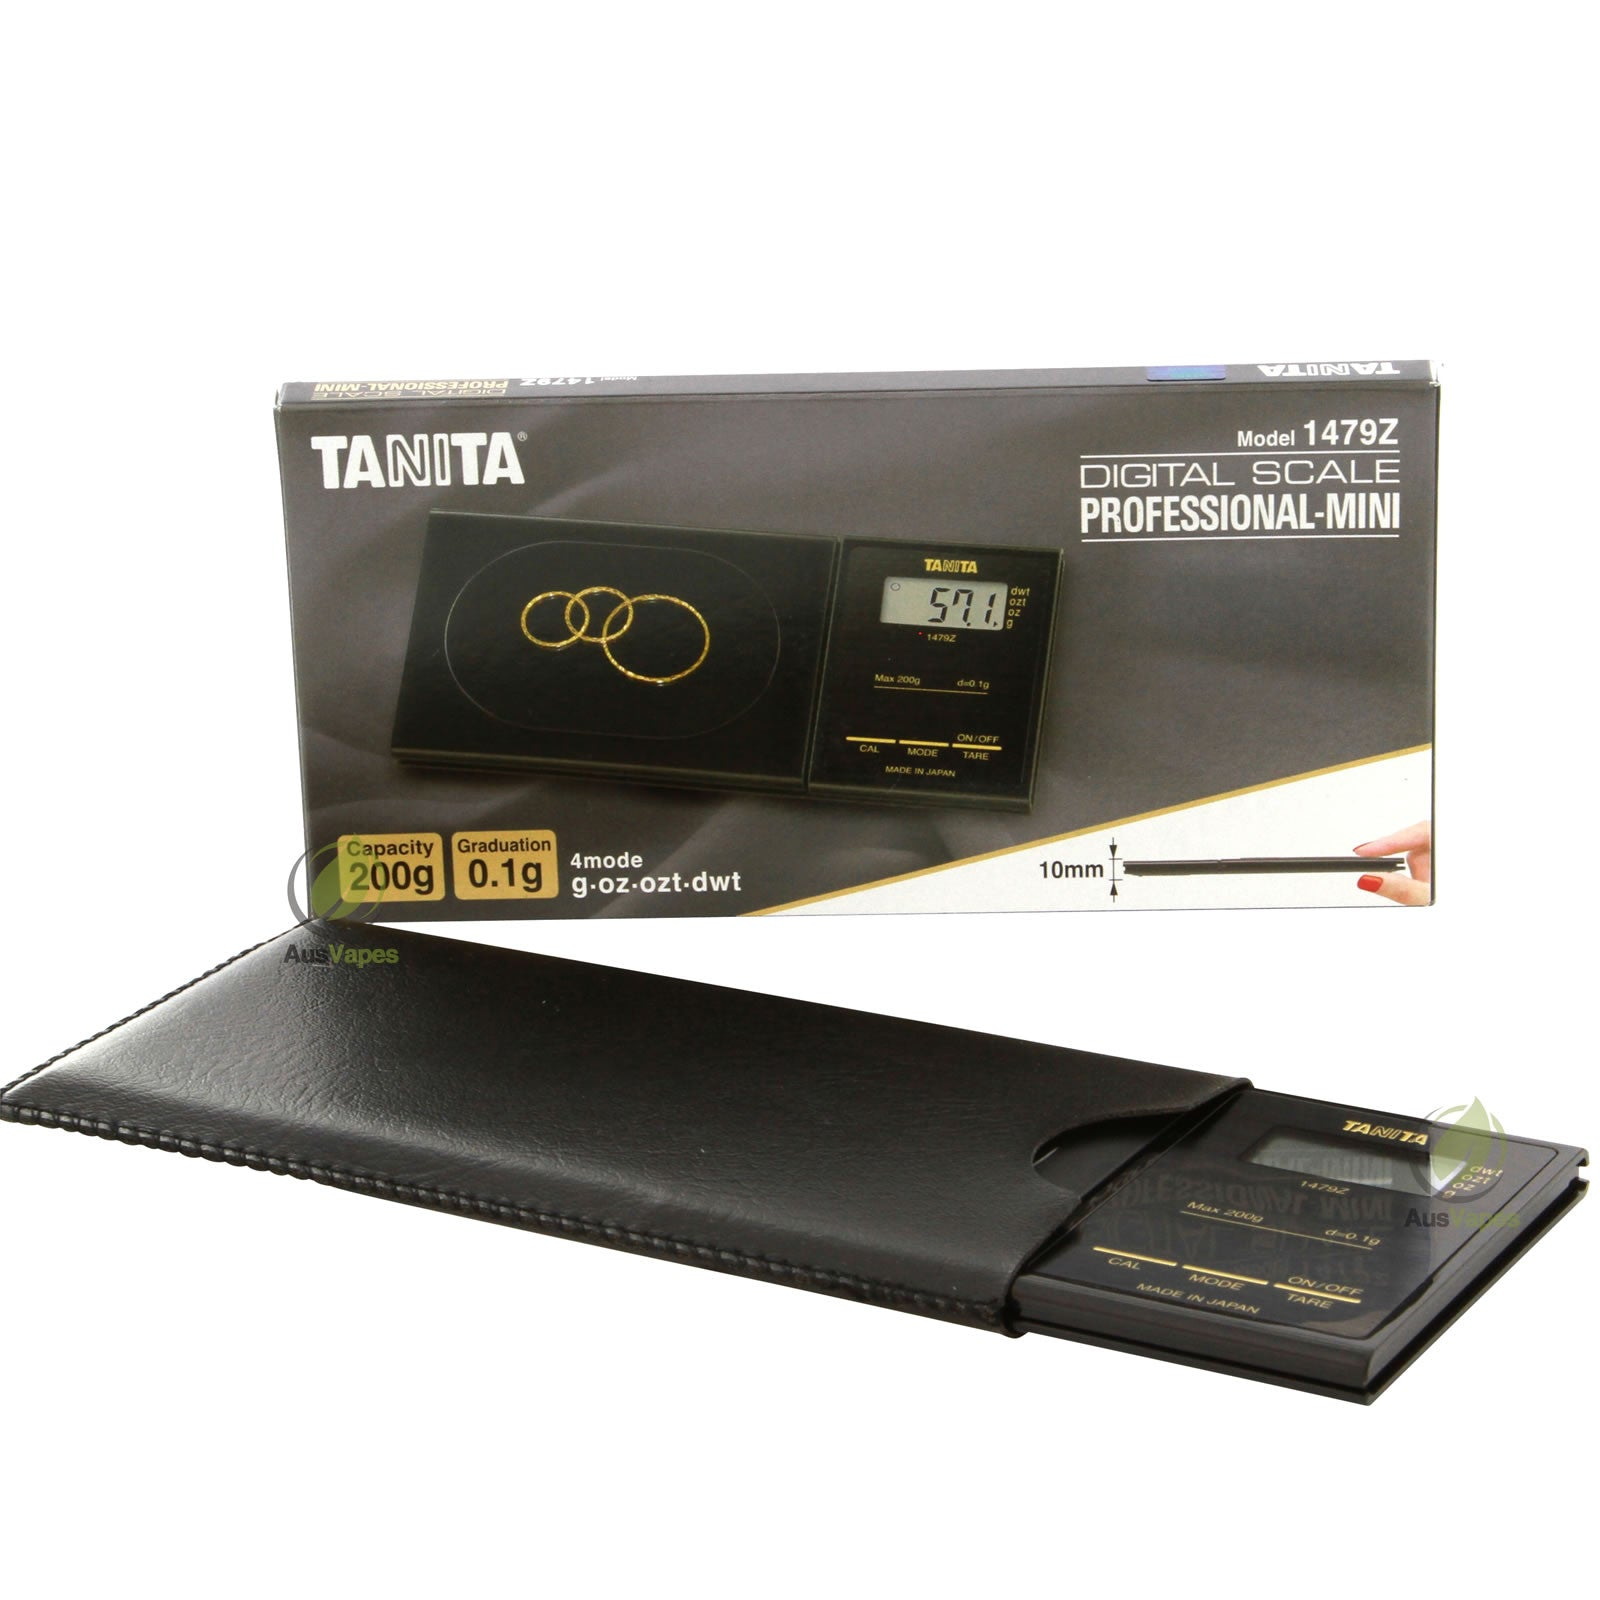 Tanita 1479Z Professional Mini Digital Scale 200g x 0.1g